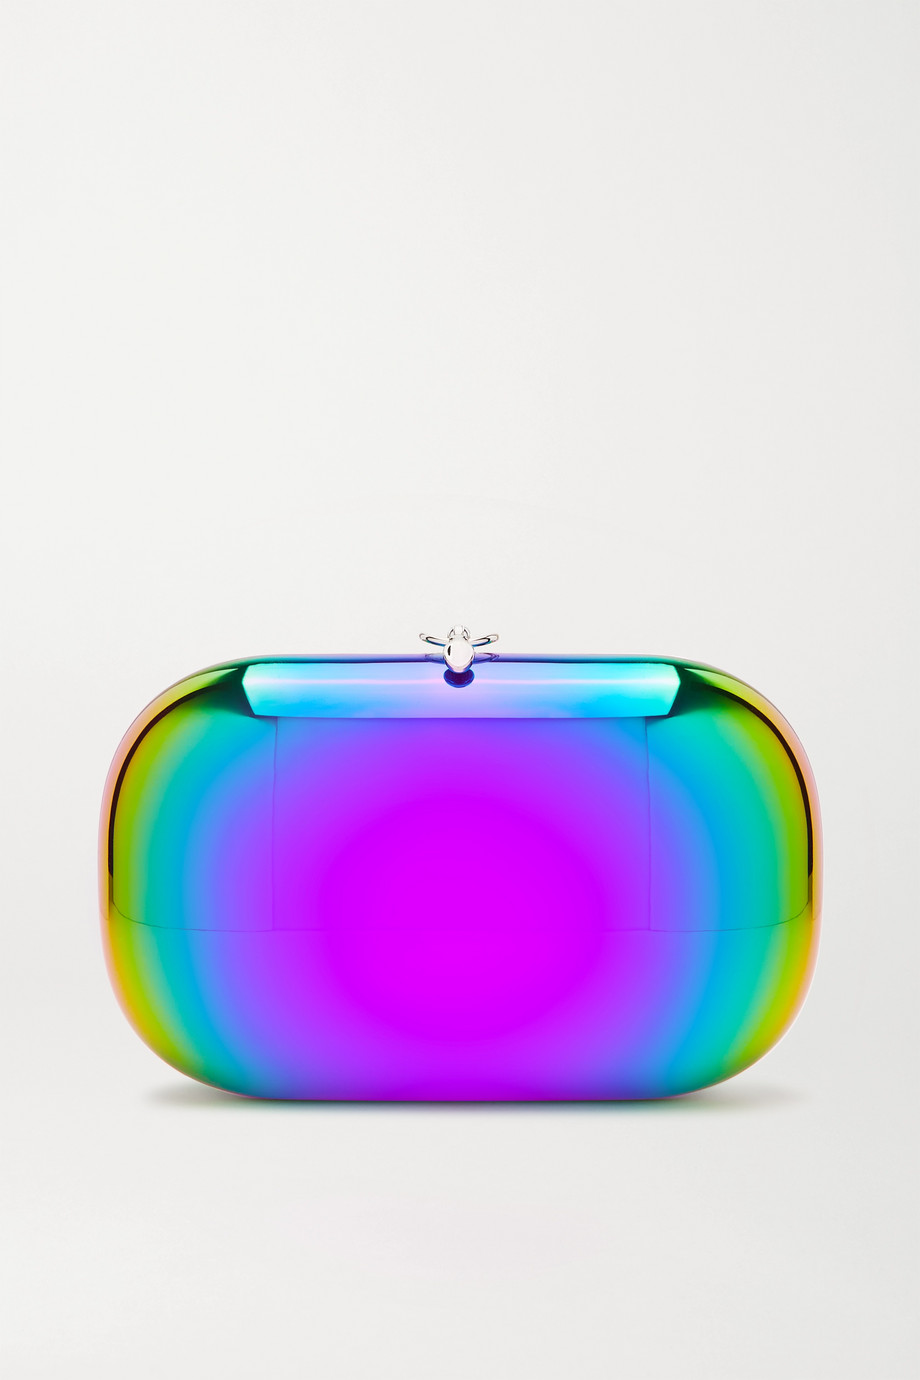 Jeffrey Levinson Elina Plus mirrored rainbow aerospace aluminum clutch